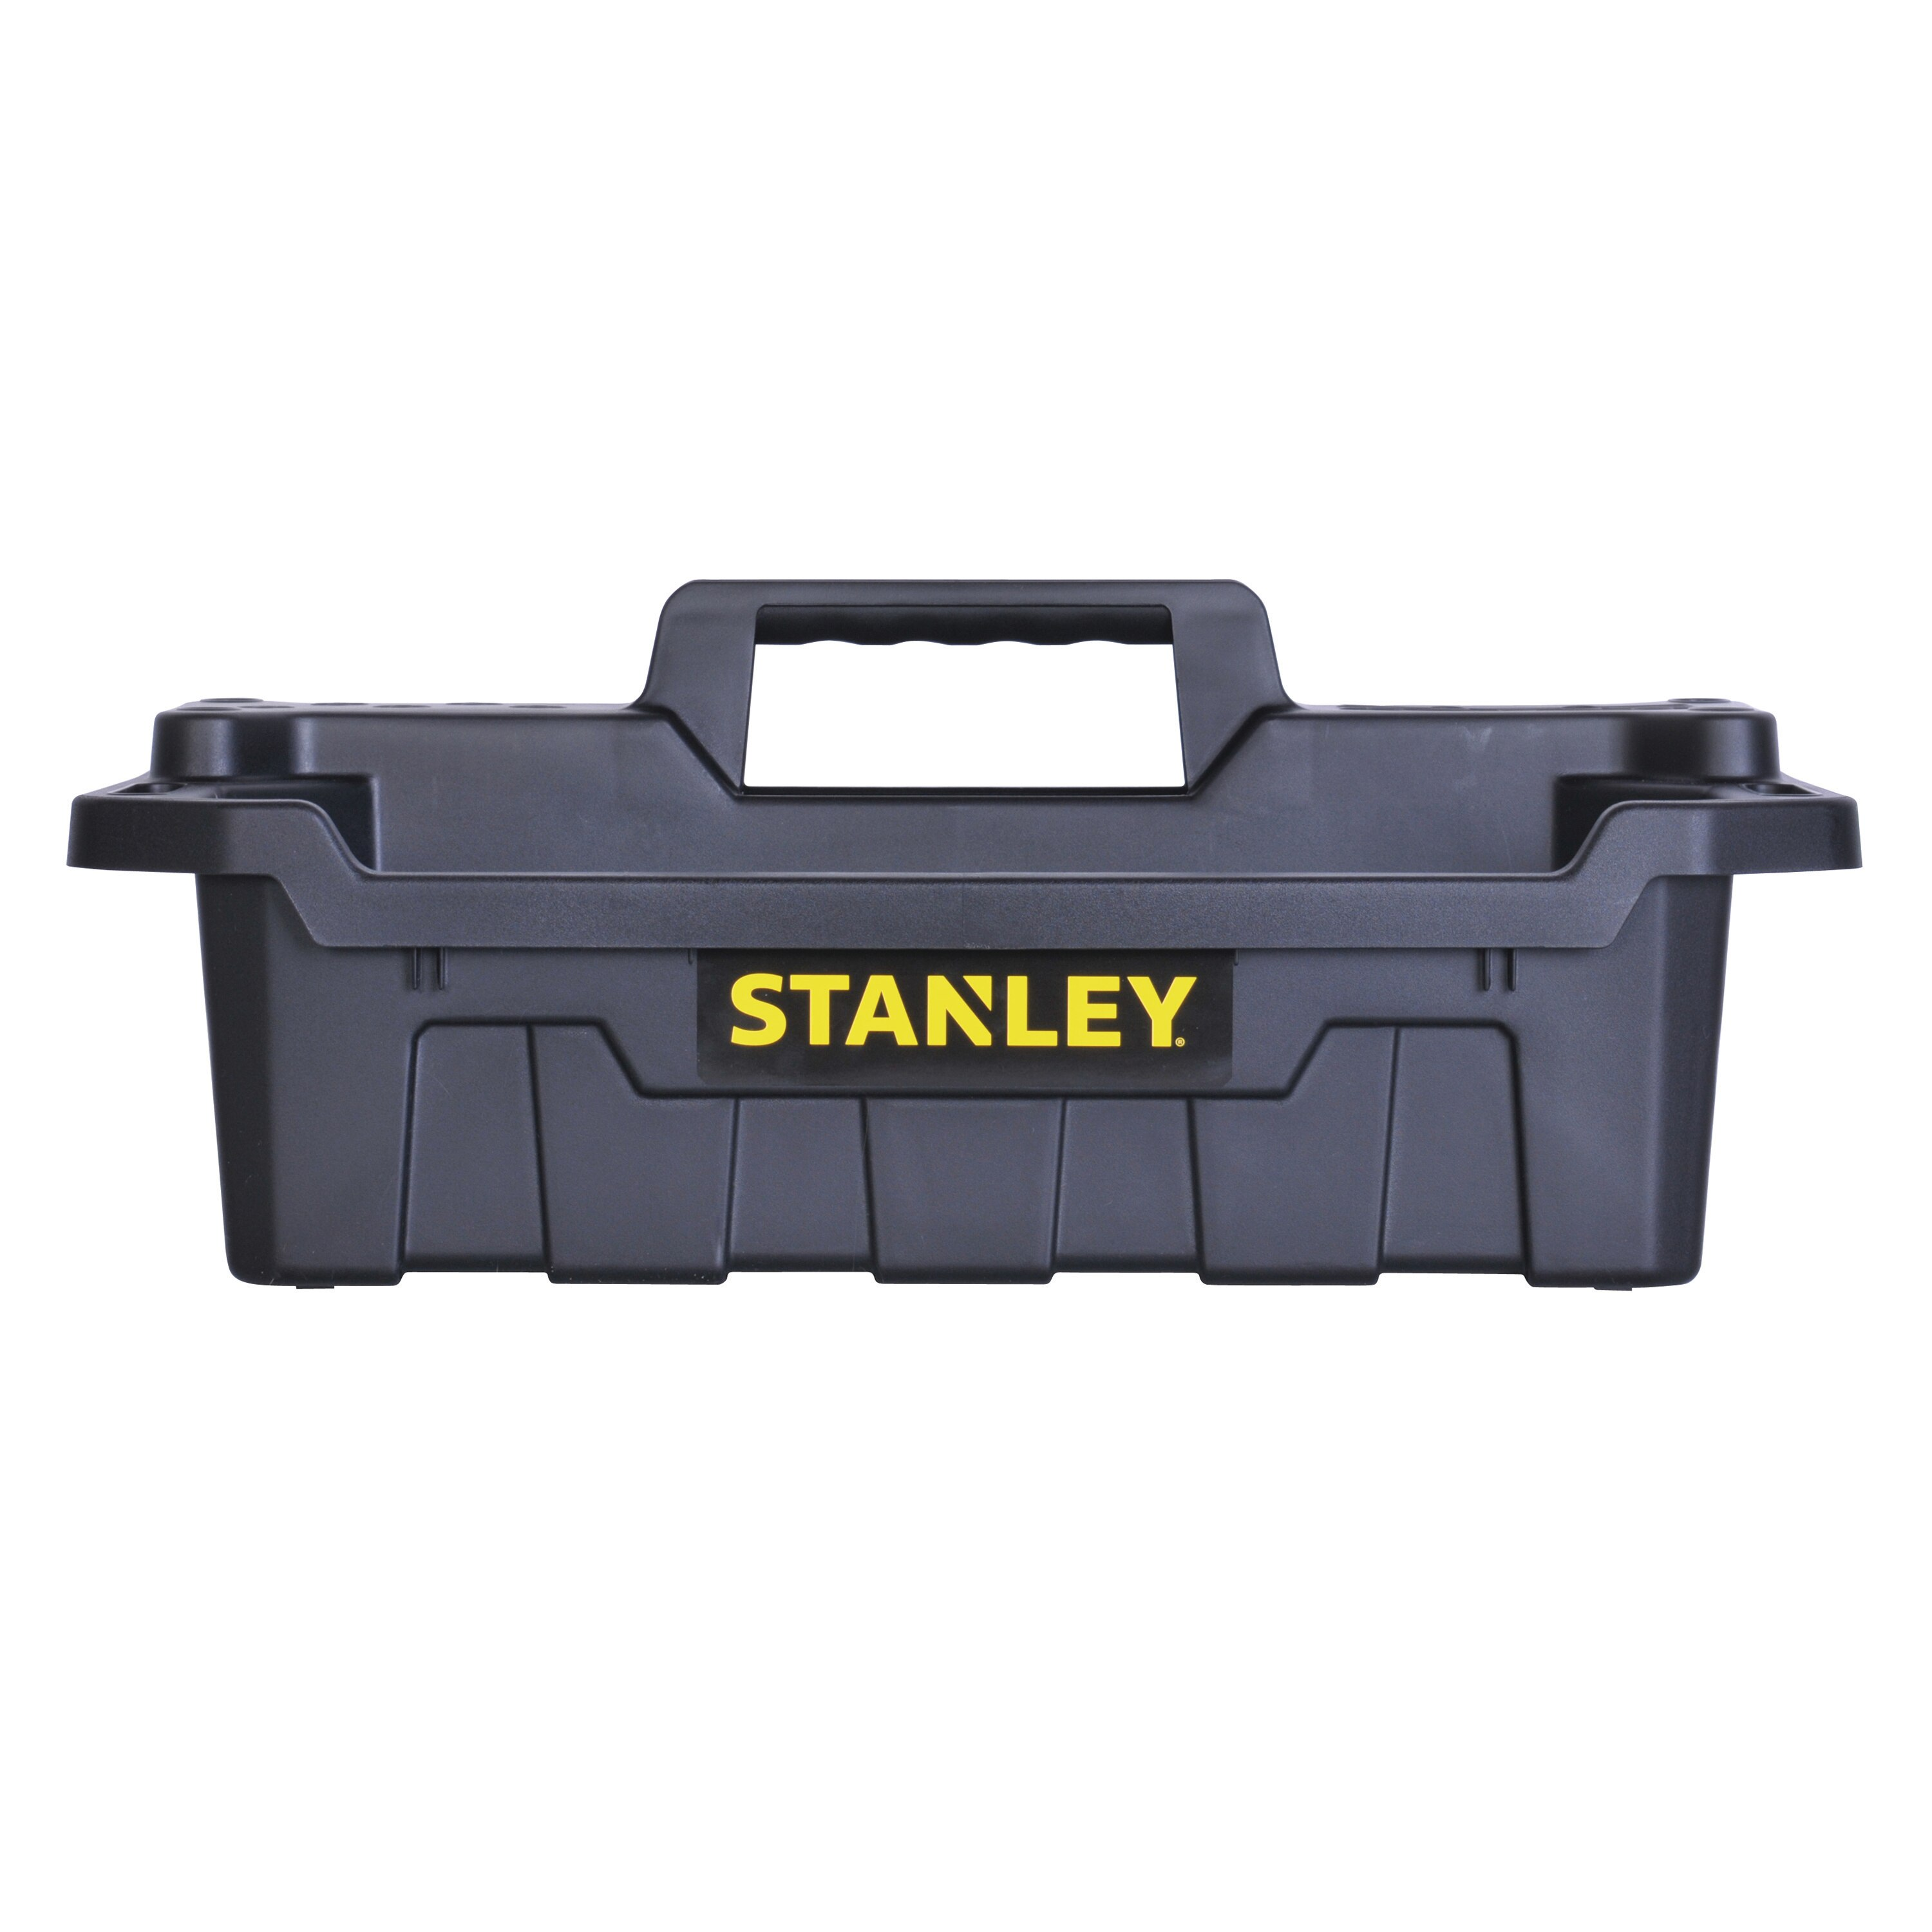 Stanley Tools - Portable Storage Tote Tray - STST41001